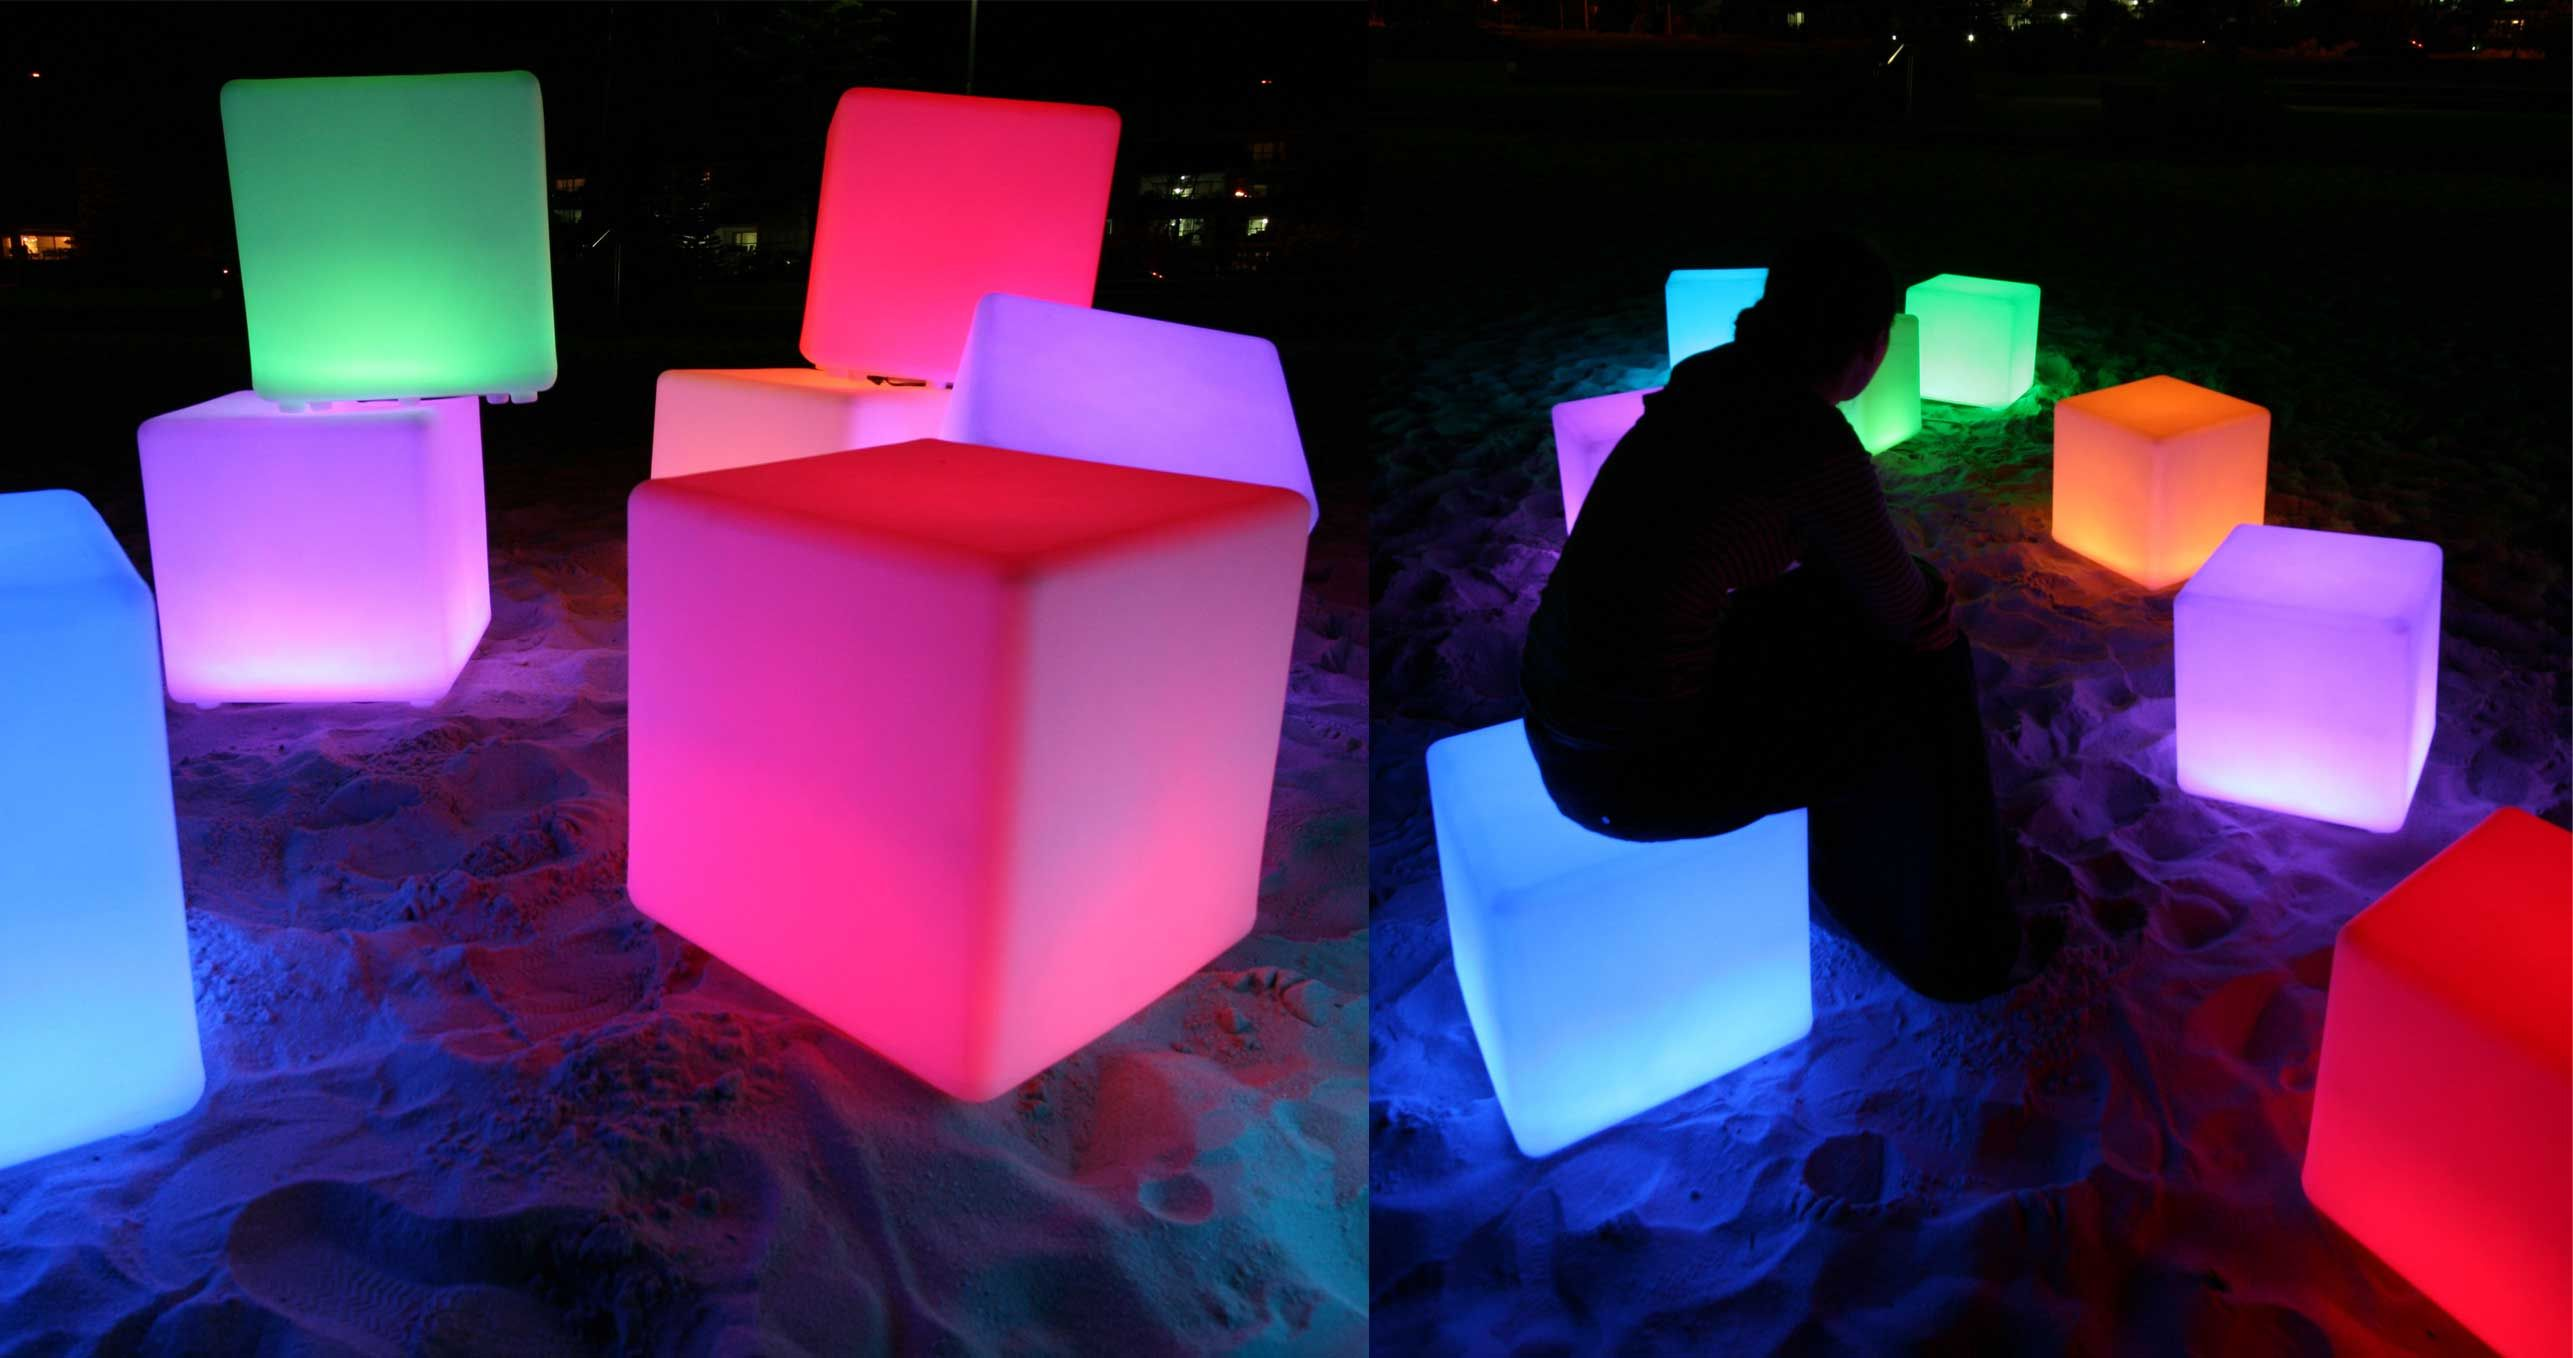 LED Light Up Rainbow Cube Chairs. Http://mobbsgroup.com/